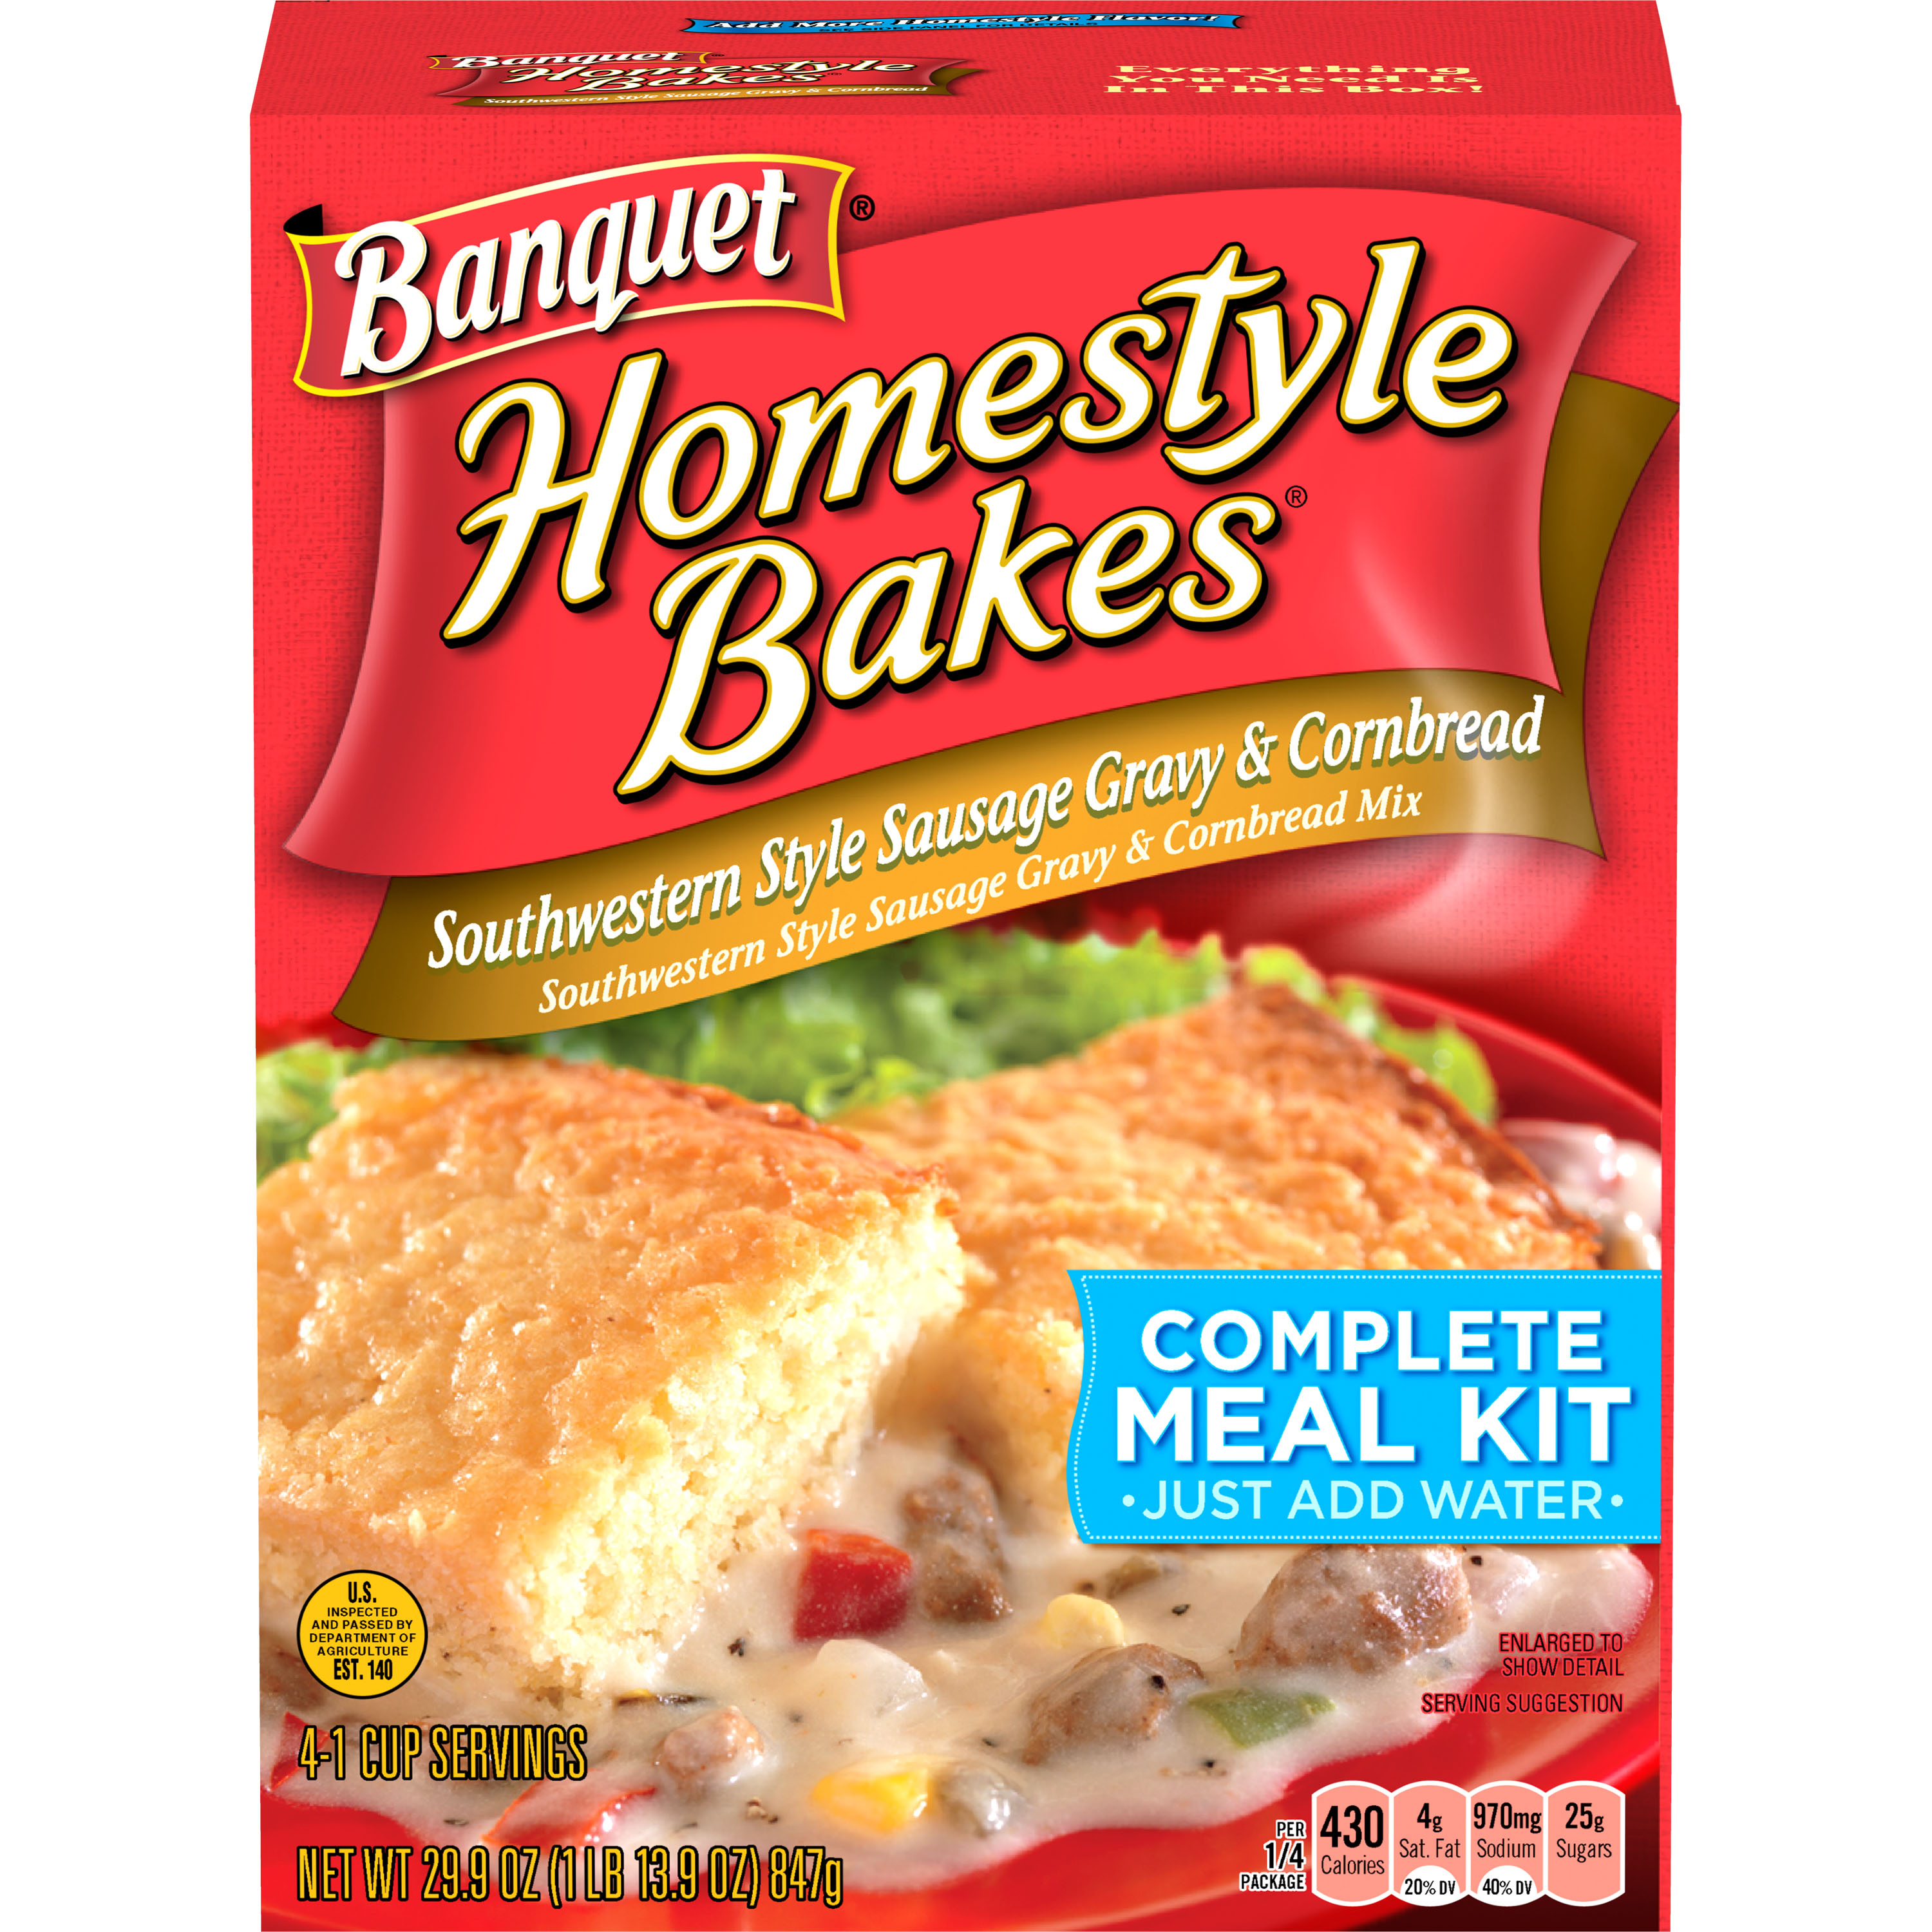 Banquet Homestyle Bakes Southwestern Style Sausage Gravy and Cornbread, 29.9 oz